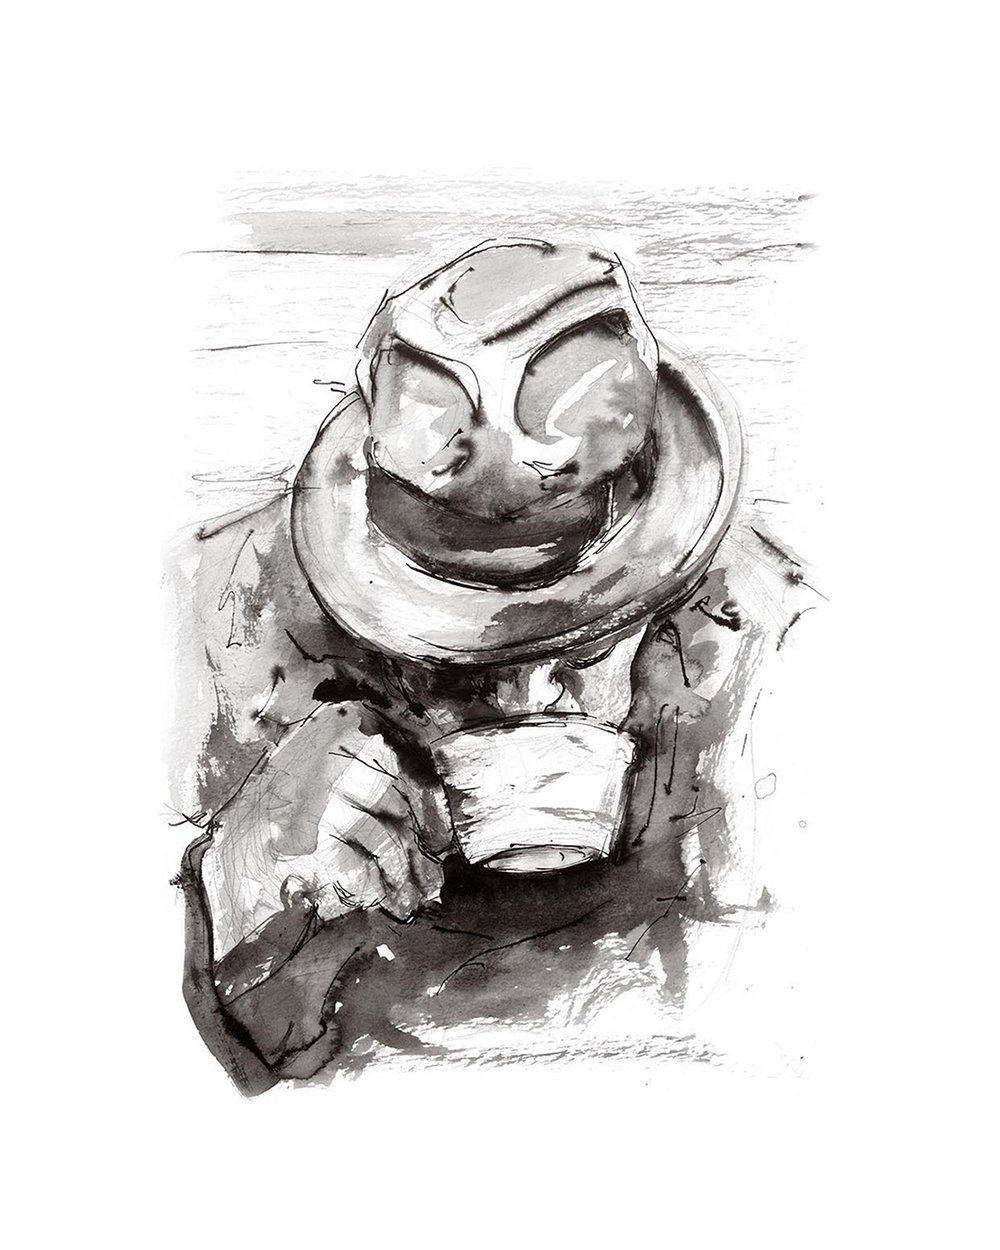 'Man with Tea'.  Fine Art Print by Artist, Dana Trijbetz.  Original Ink Painting made as a Giclée Print on 100% Cotton Paper.  Image 2 of 4.jpg